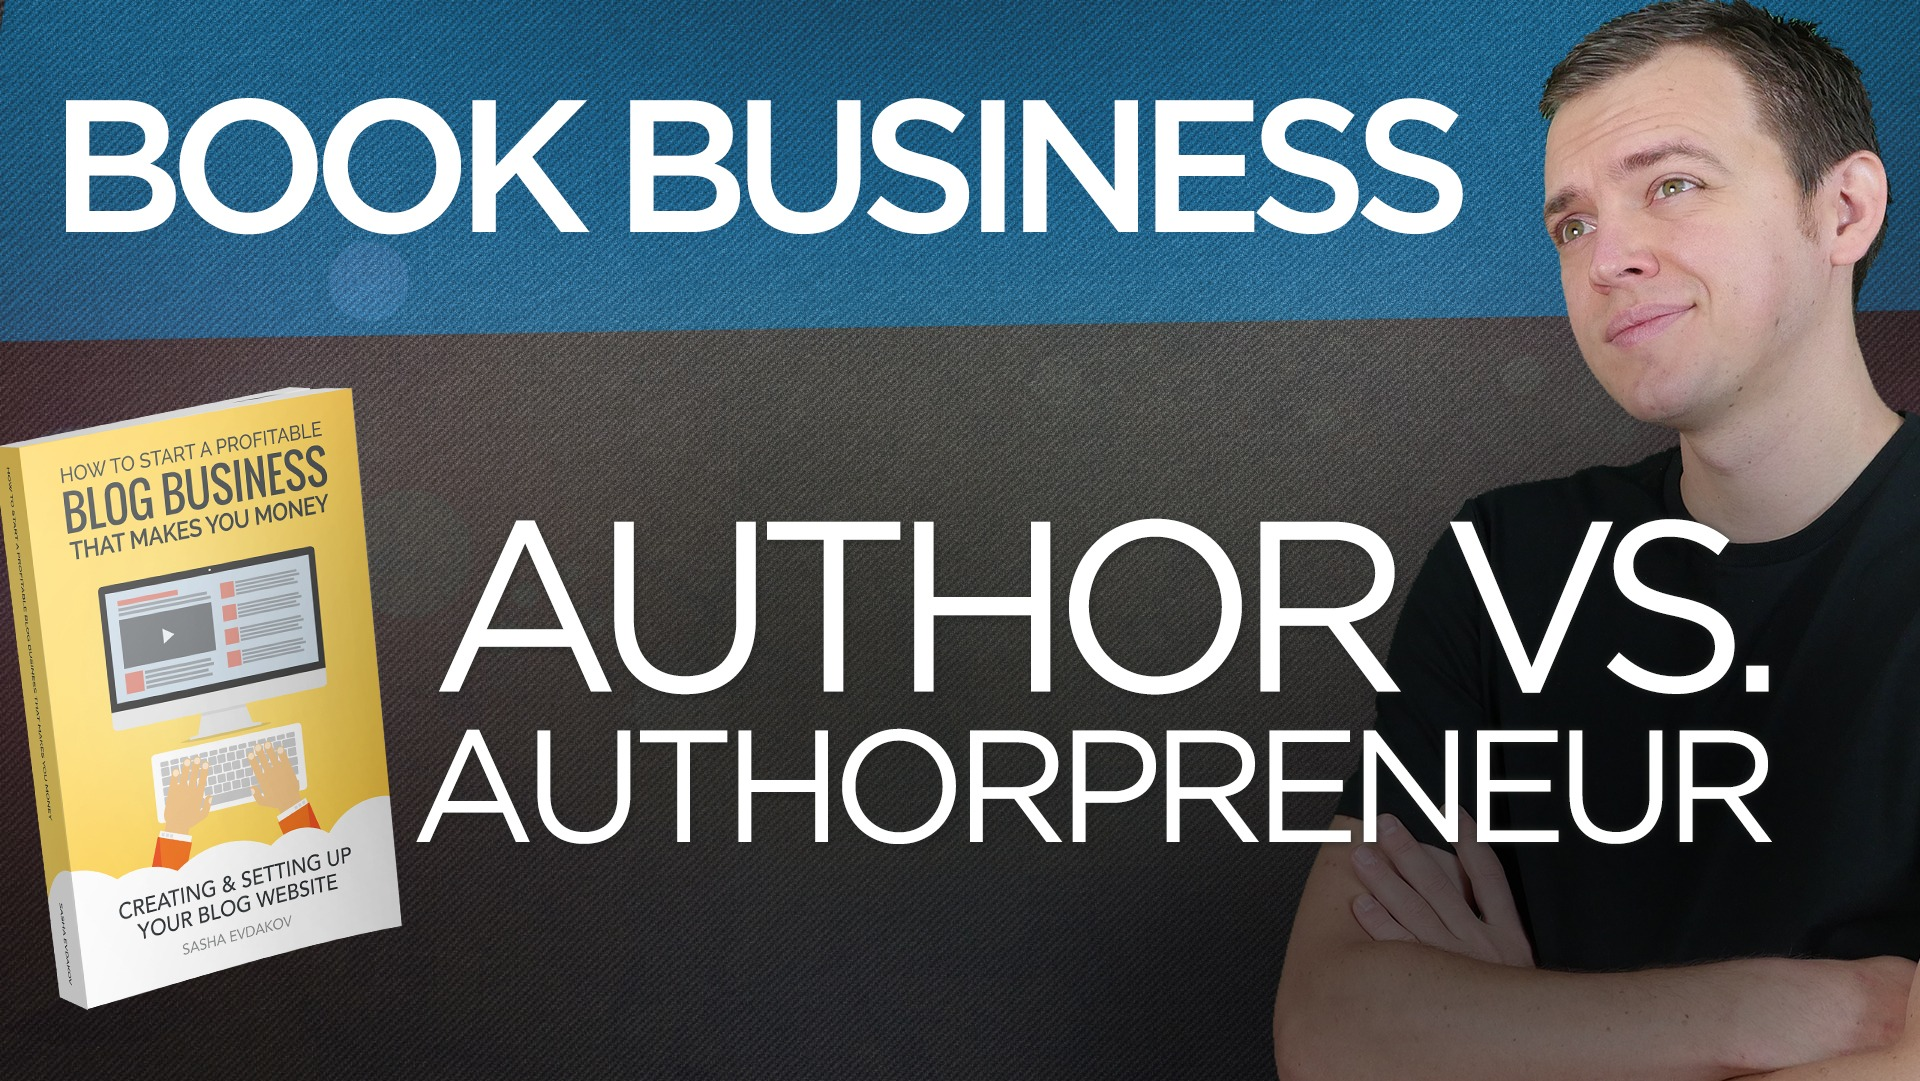 Book Business: Author vs Authorpreneur – What's the Difference?